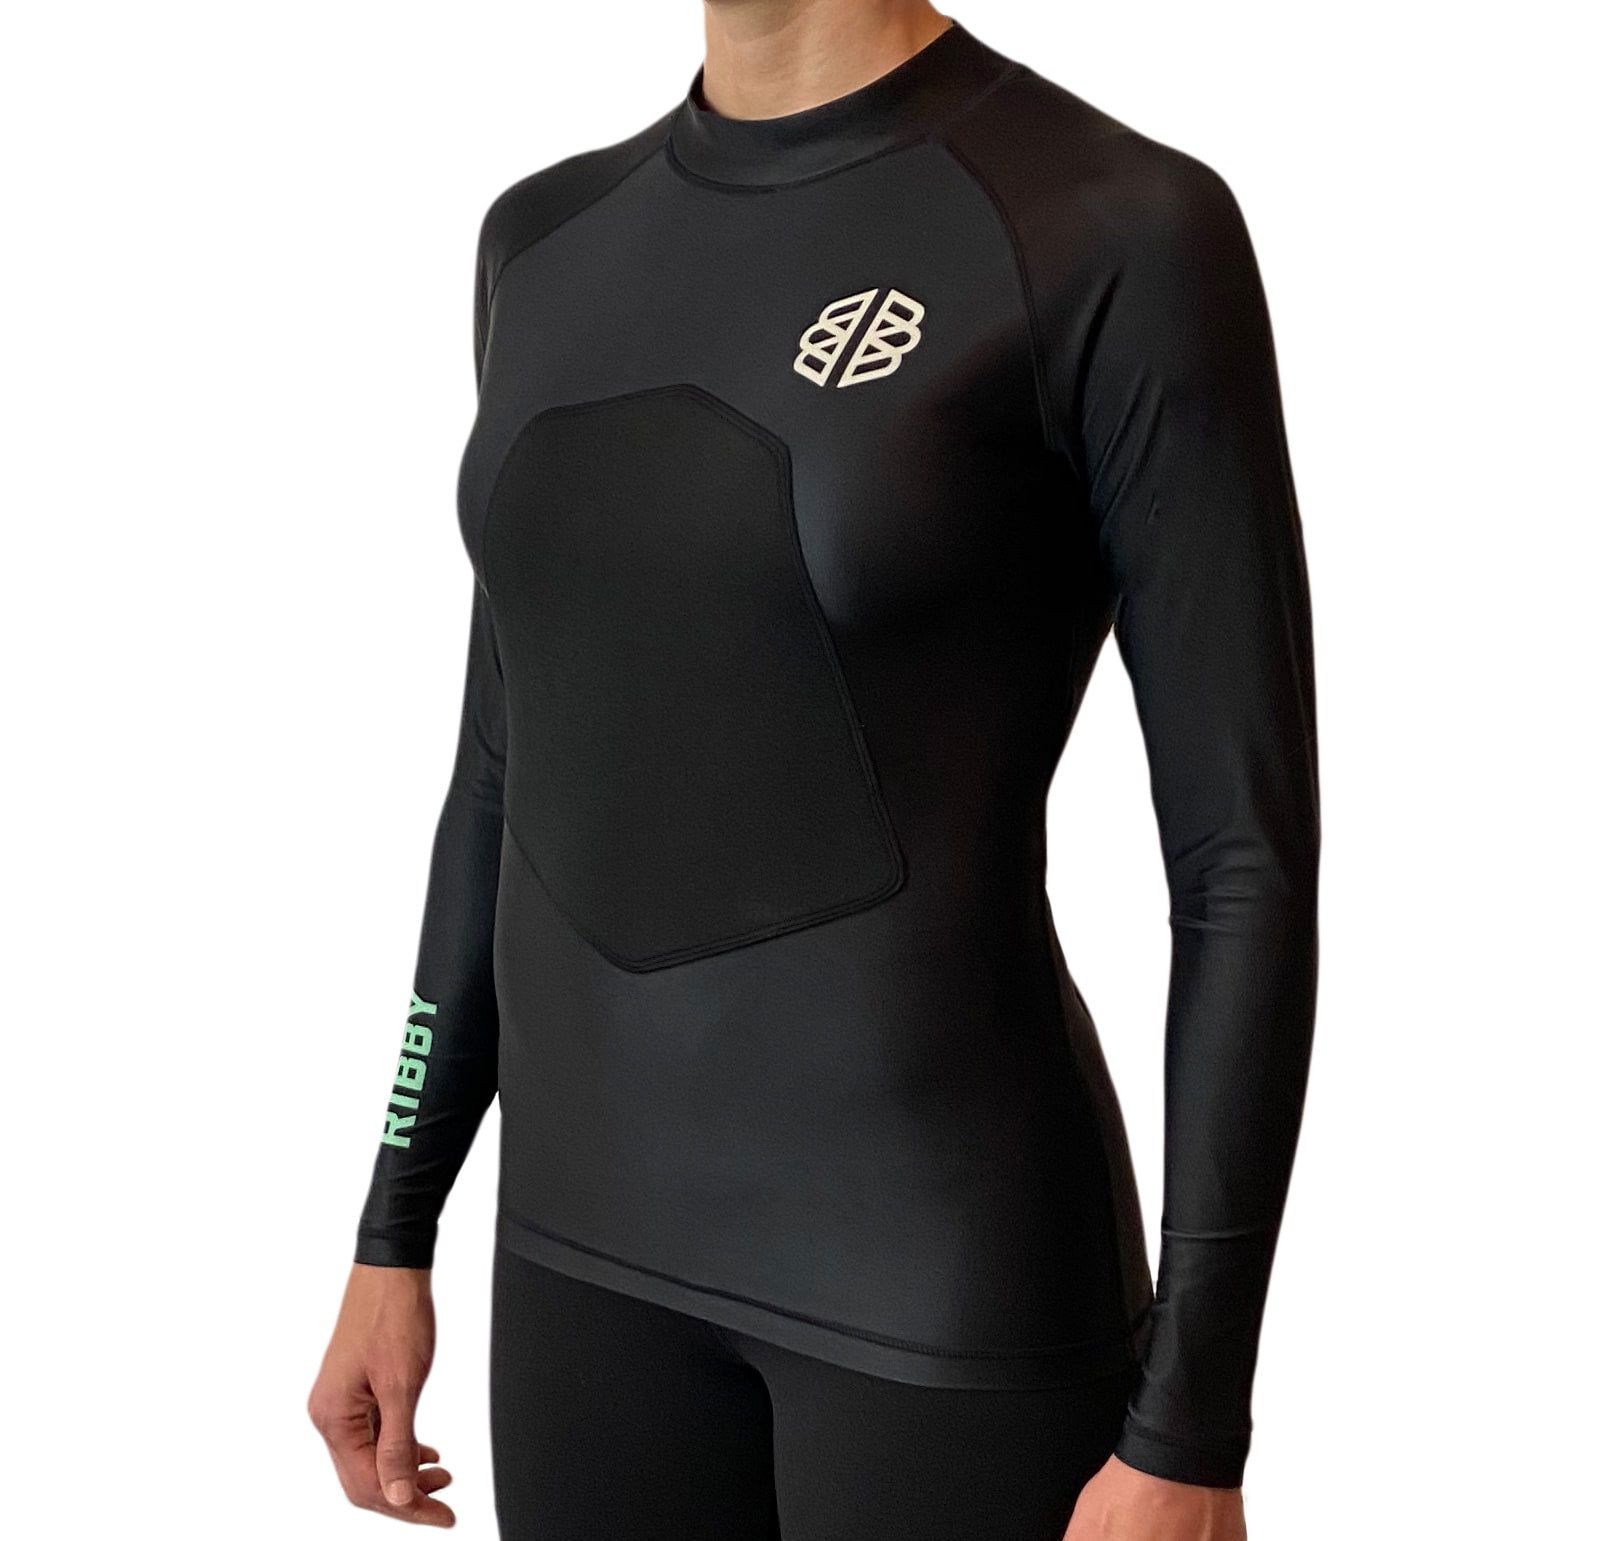 Ribby - Women's Long Sleeve Black padded rash guard